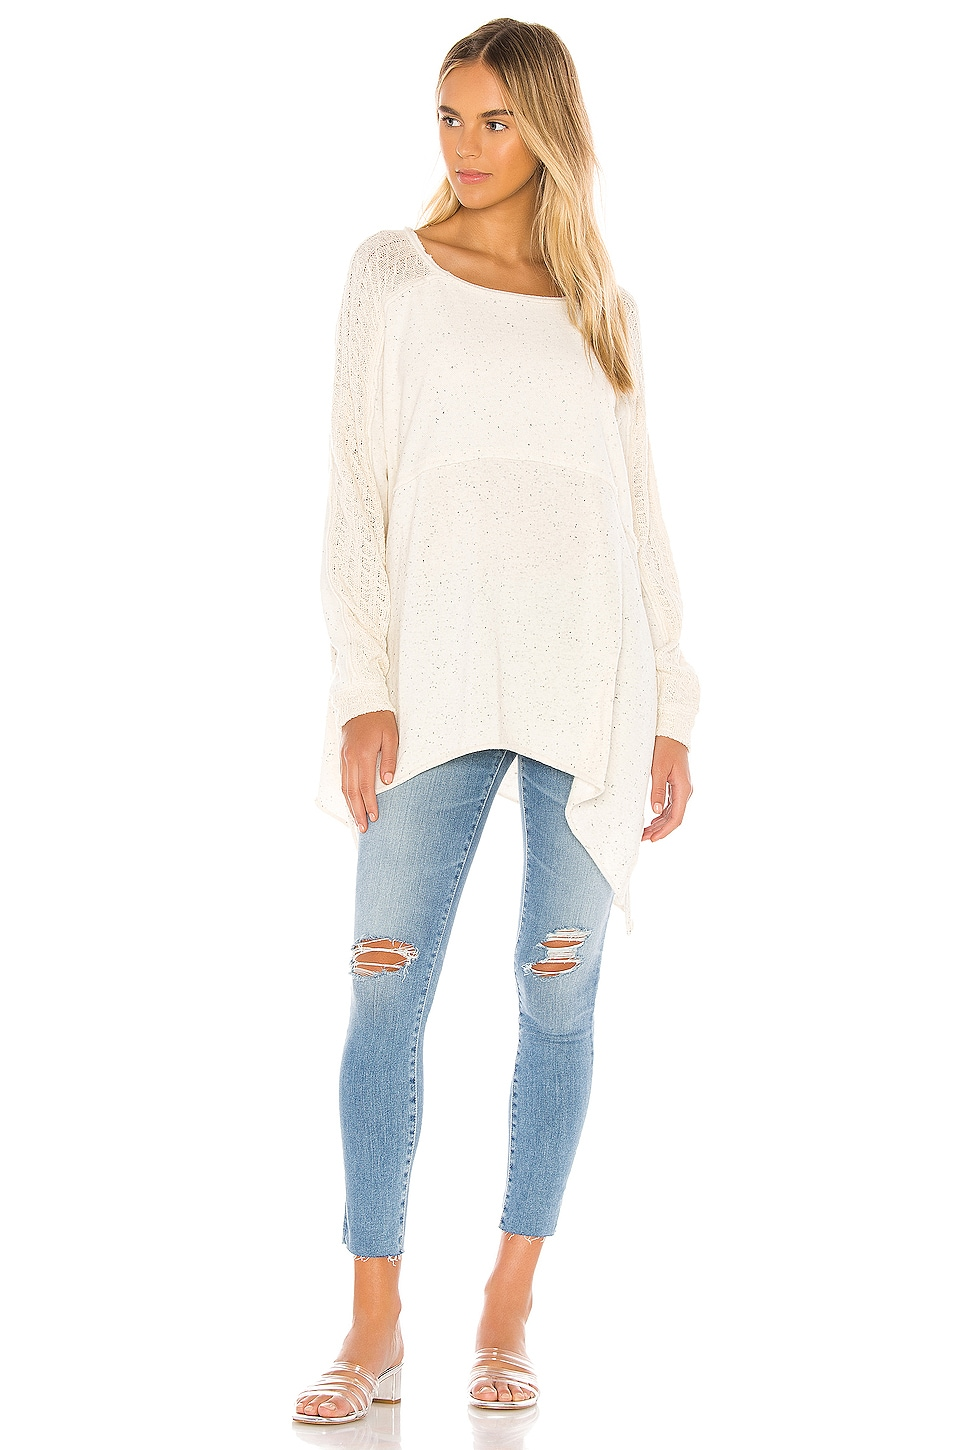 Free People My Girl Pullover in Ivory